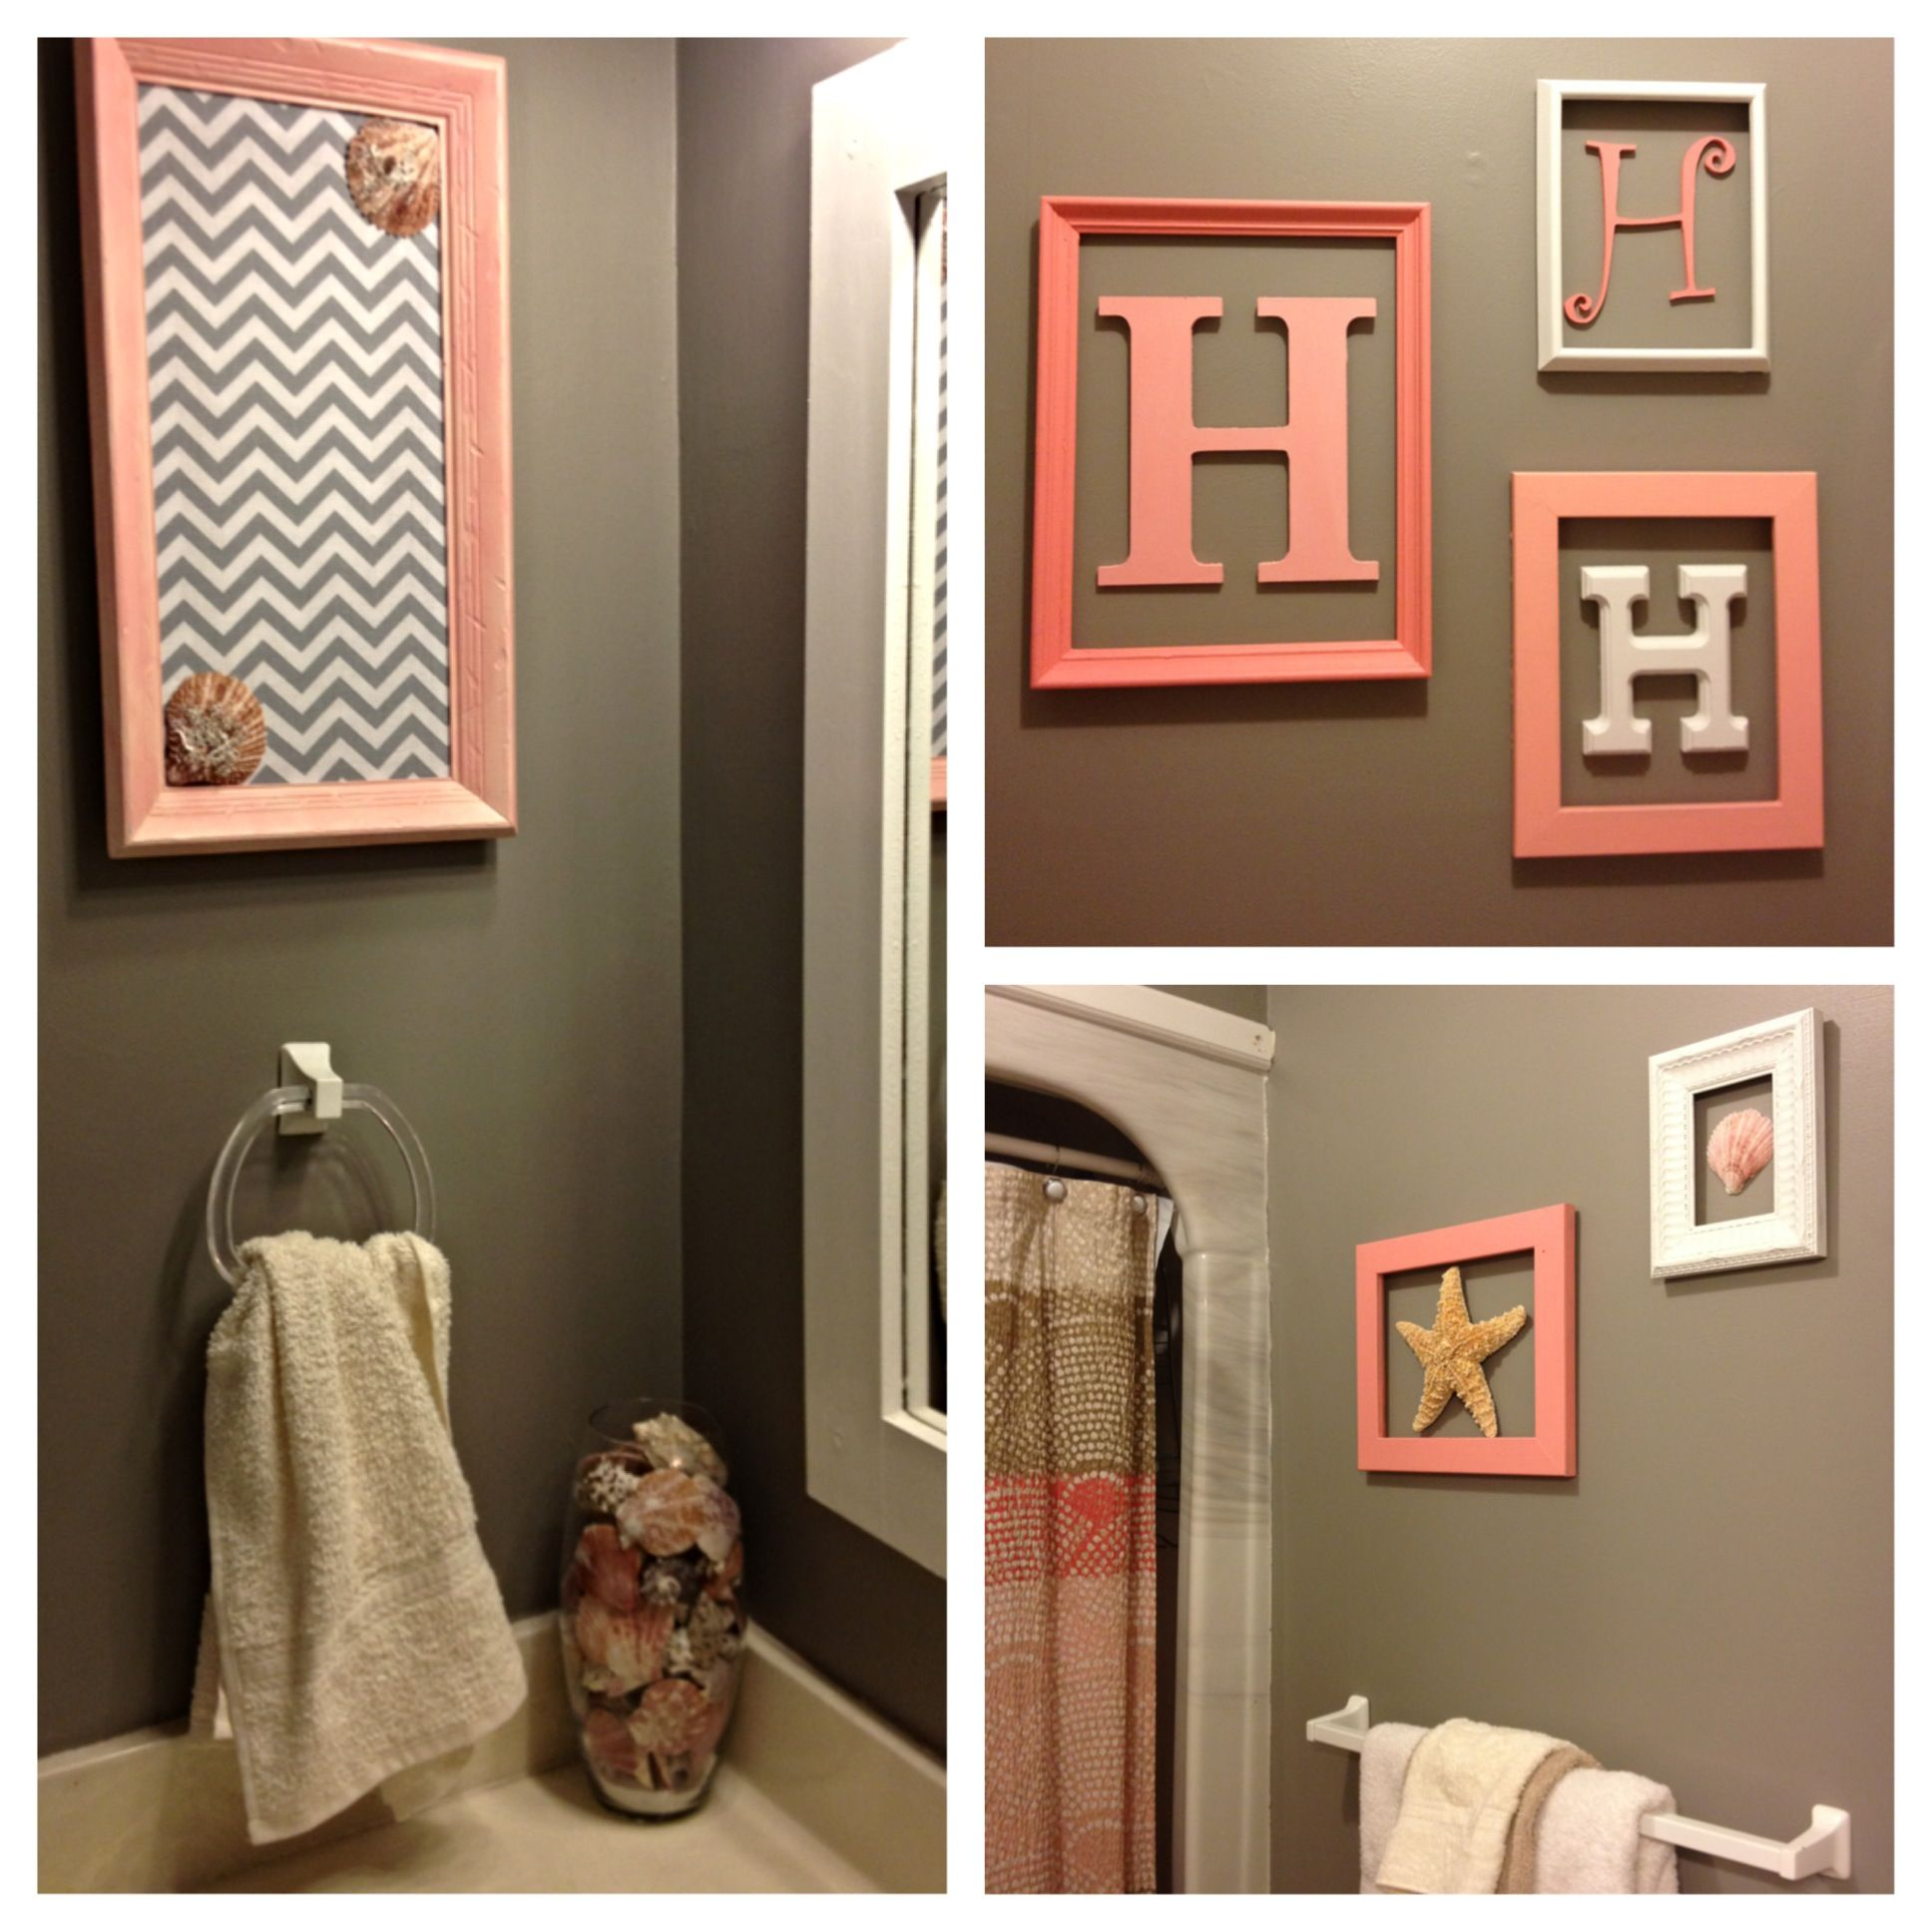 Our new beachy bathroom monogram wall pink tan grey for Bathroom ideas tan